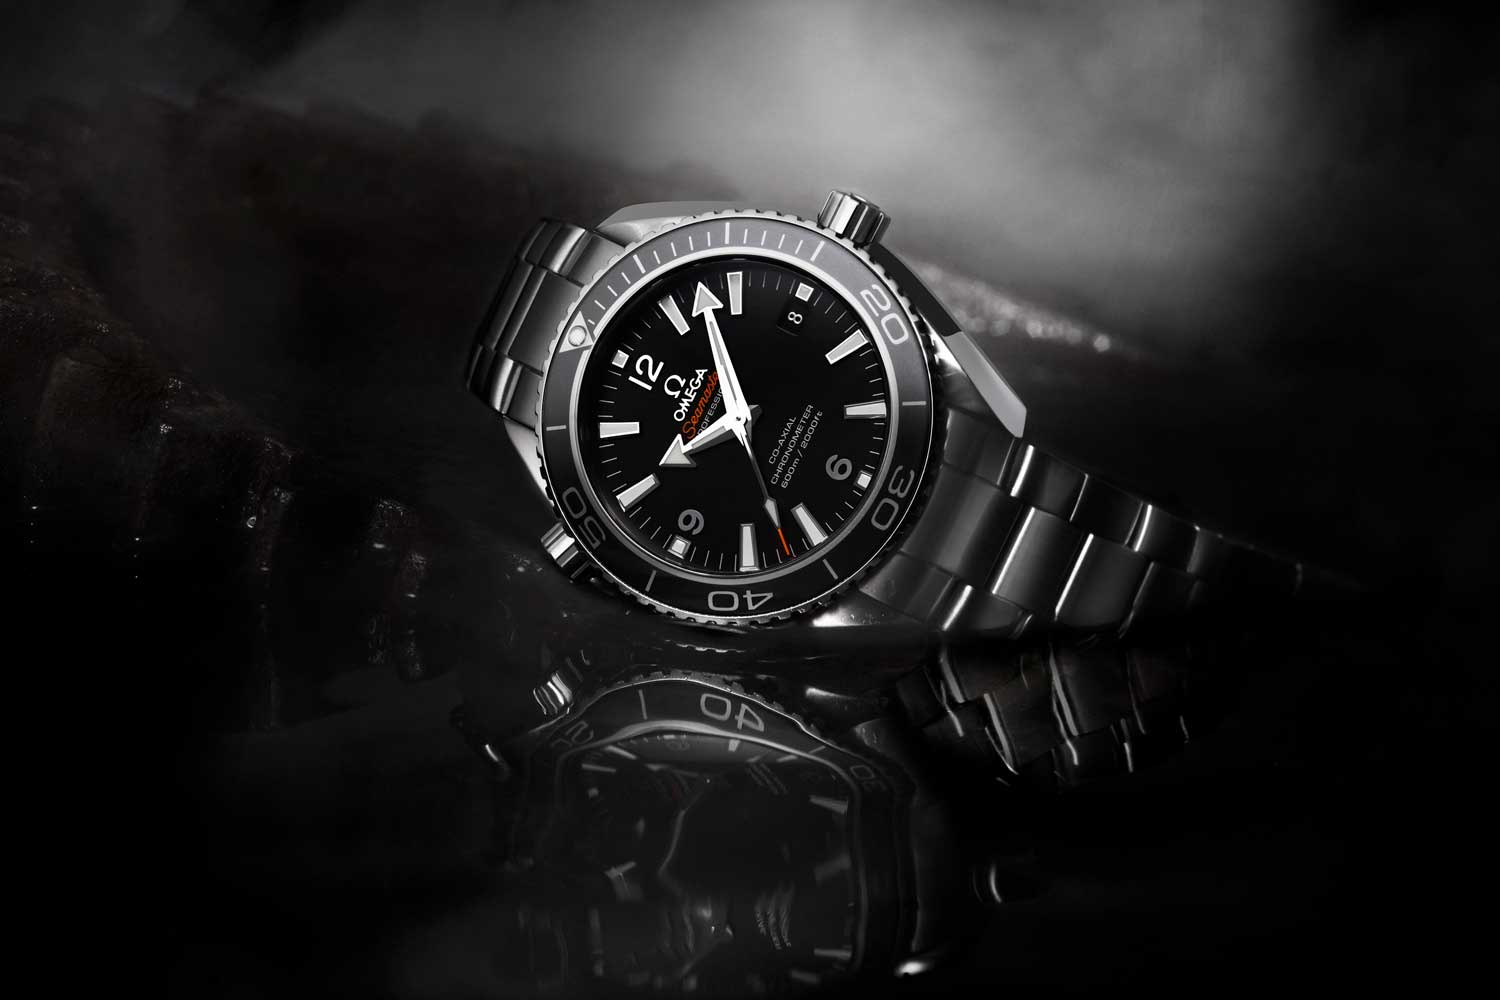 Omega Seamaster Planet Ocean 600M Ceramic 42mm worn by Bond in Skyfall (2012)